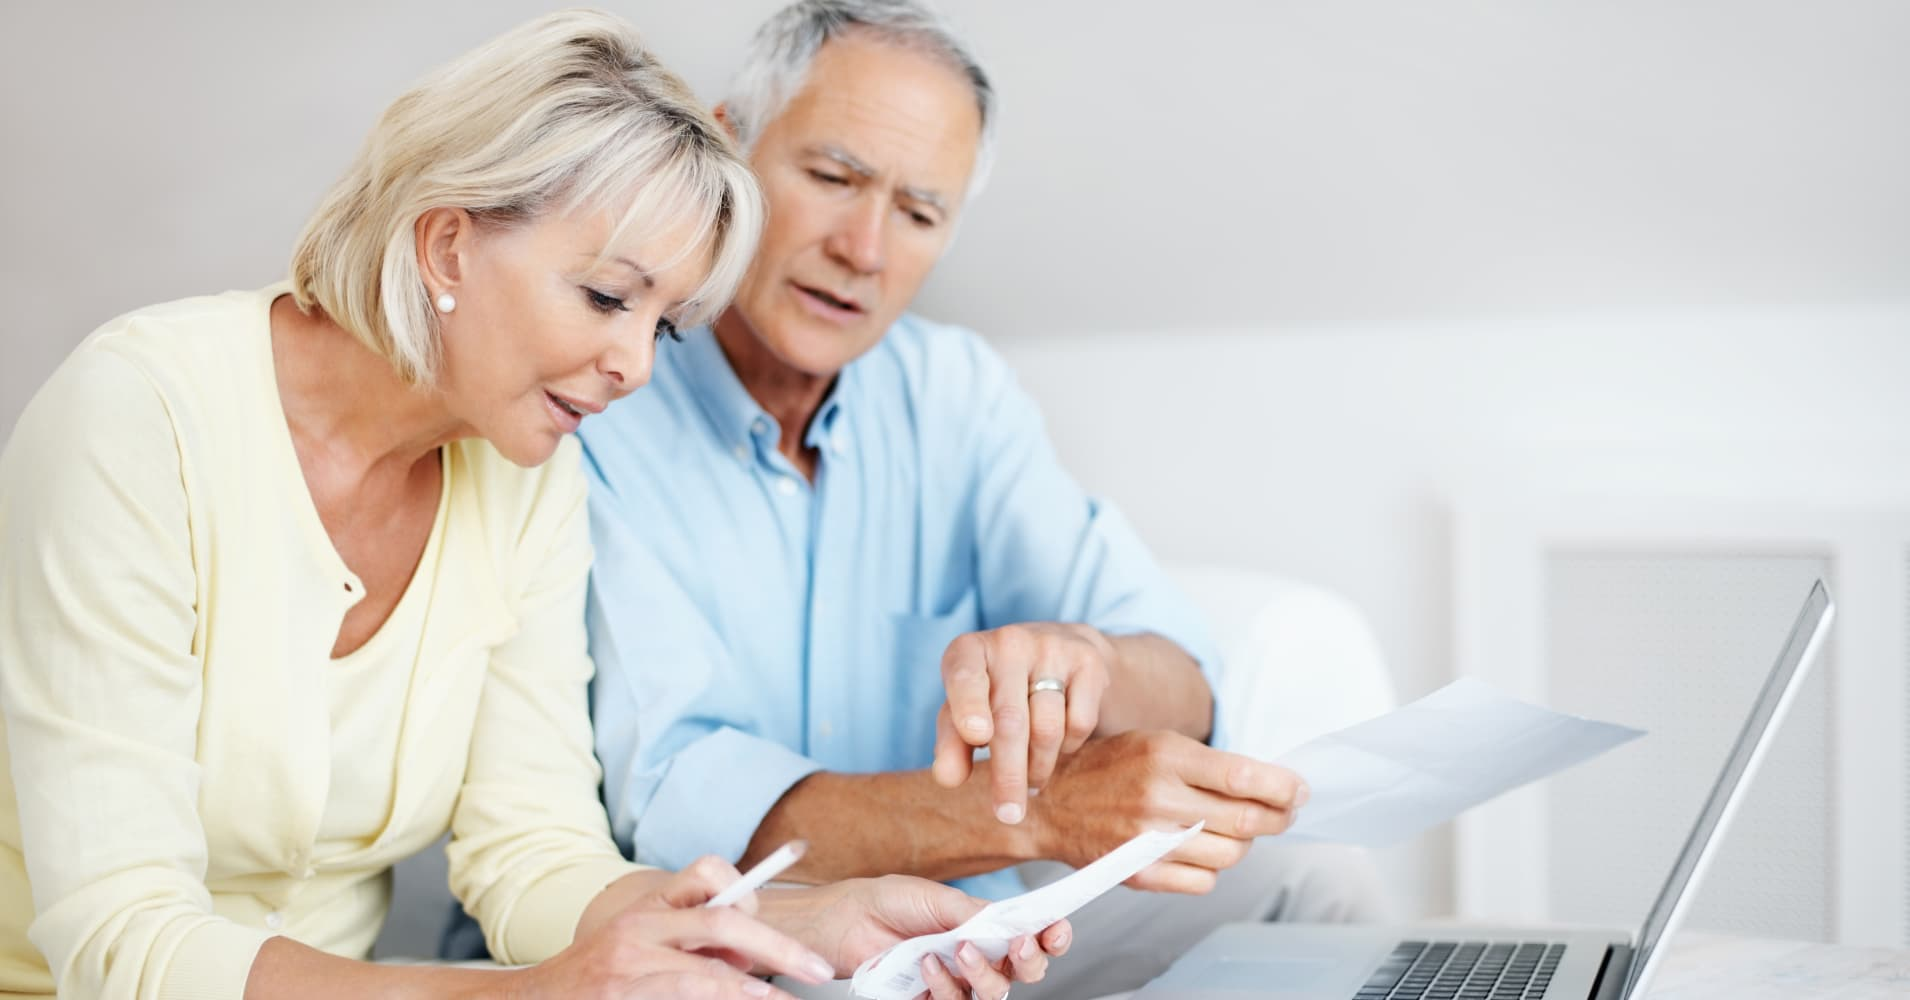 Life Insurance For Parents Quotes Life Insurance For Retirees For Some It Makes Sense